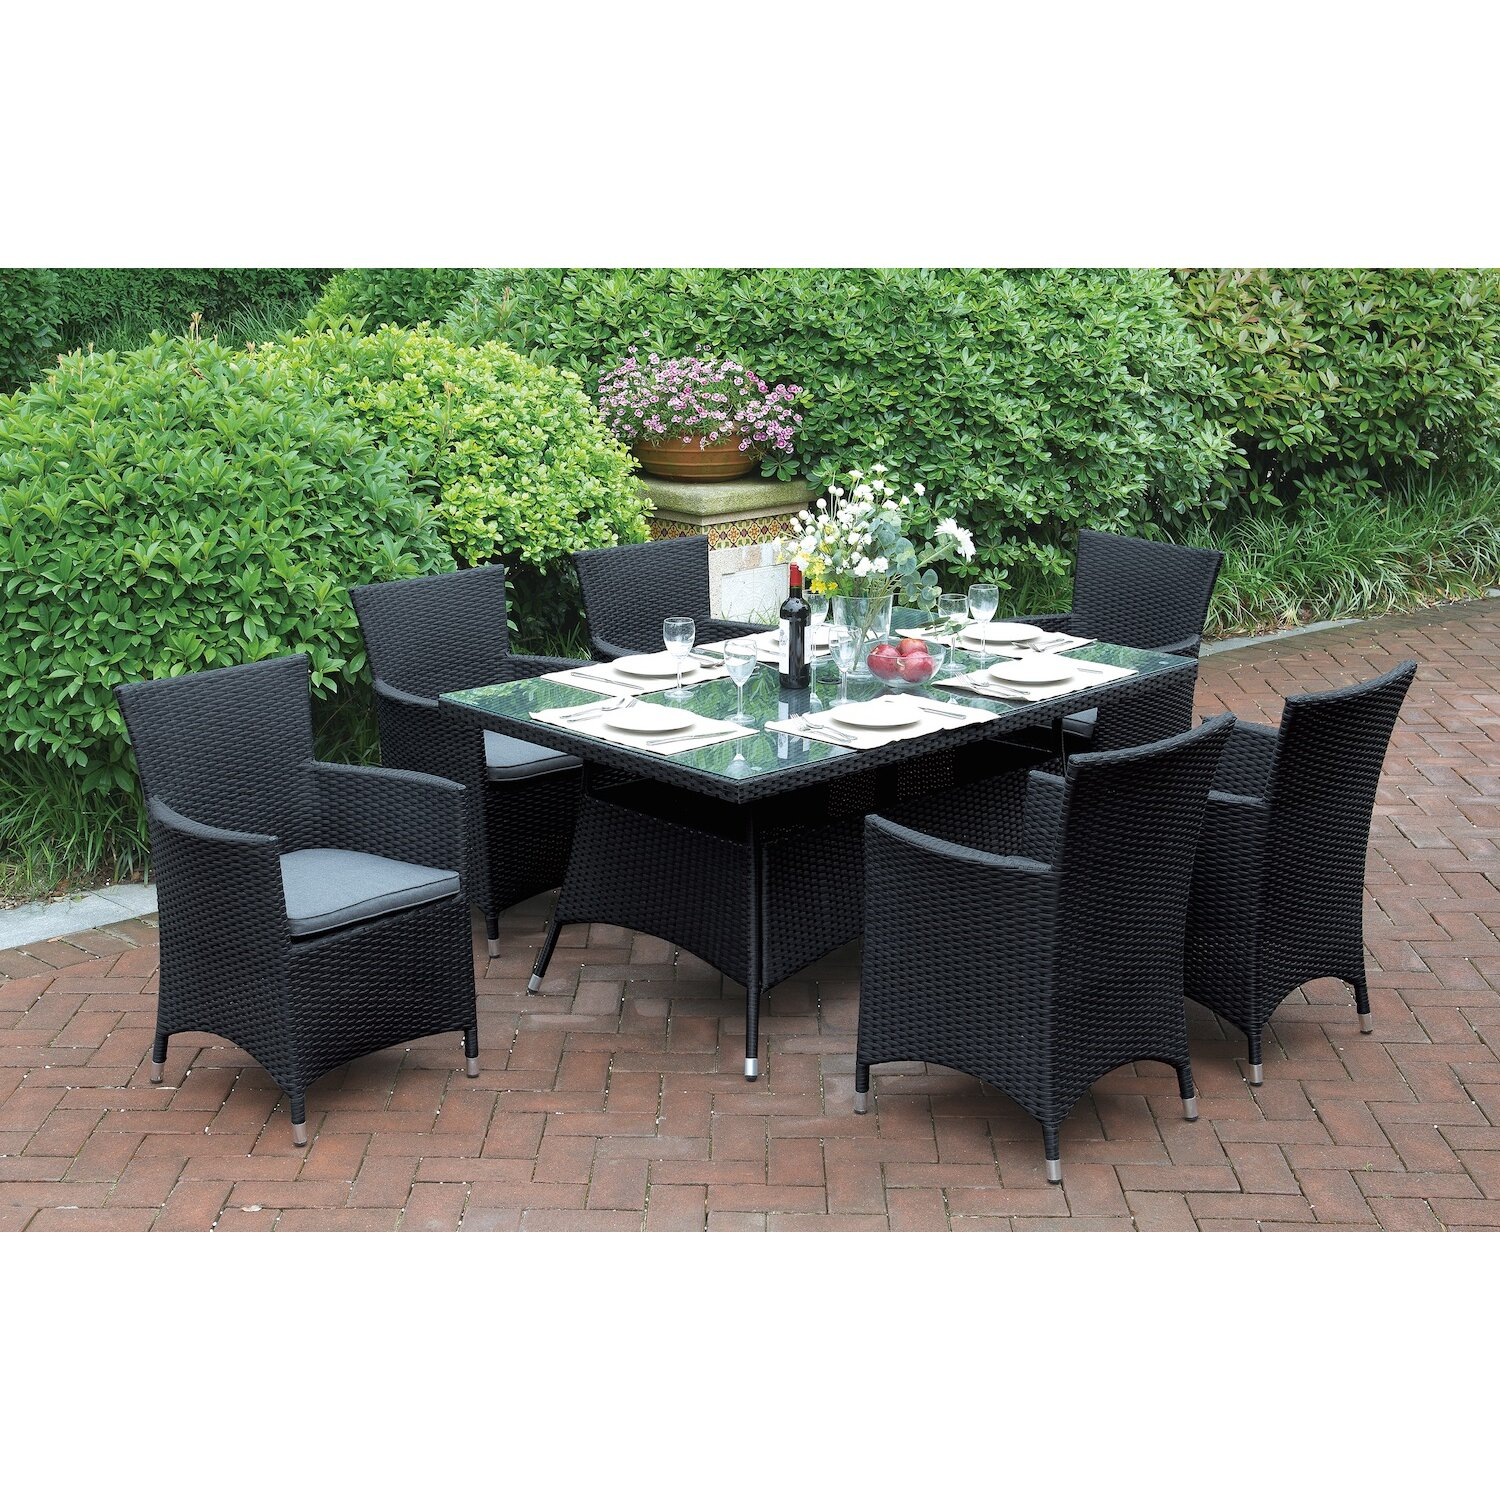 jb patio 7 piece dining set reviews